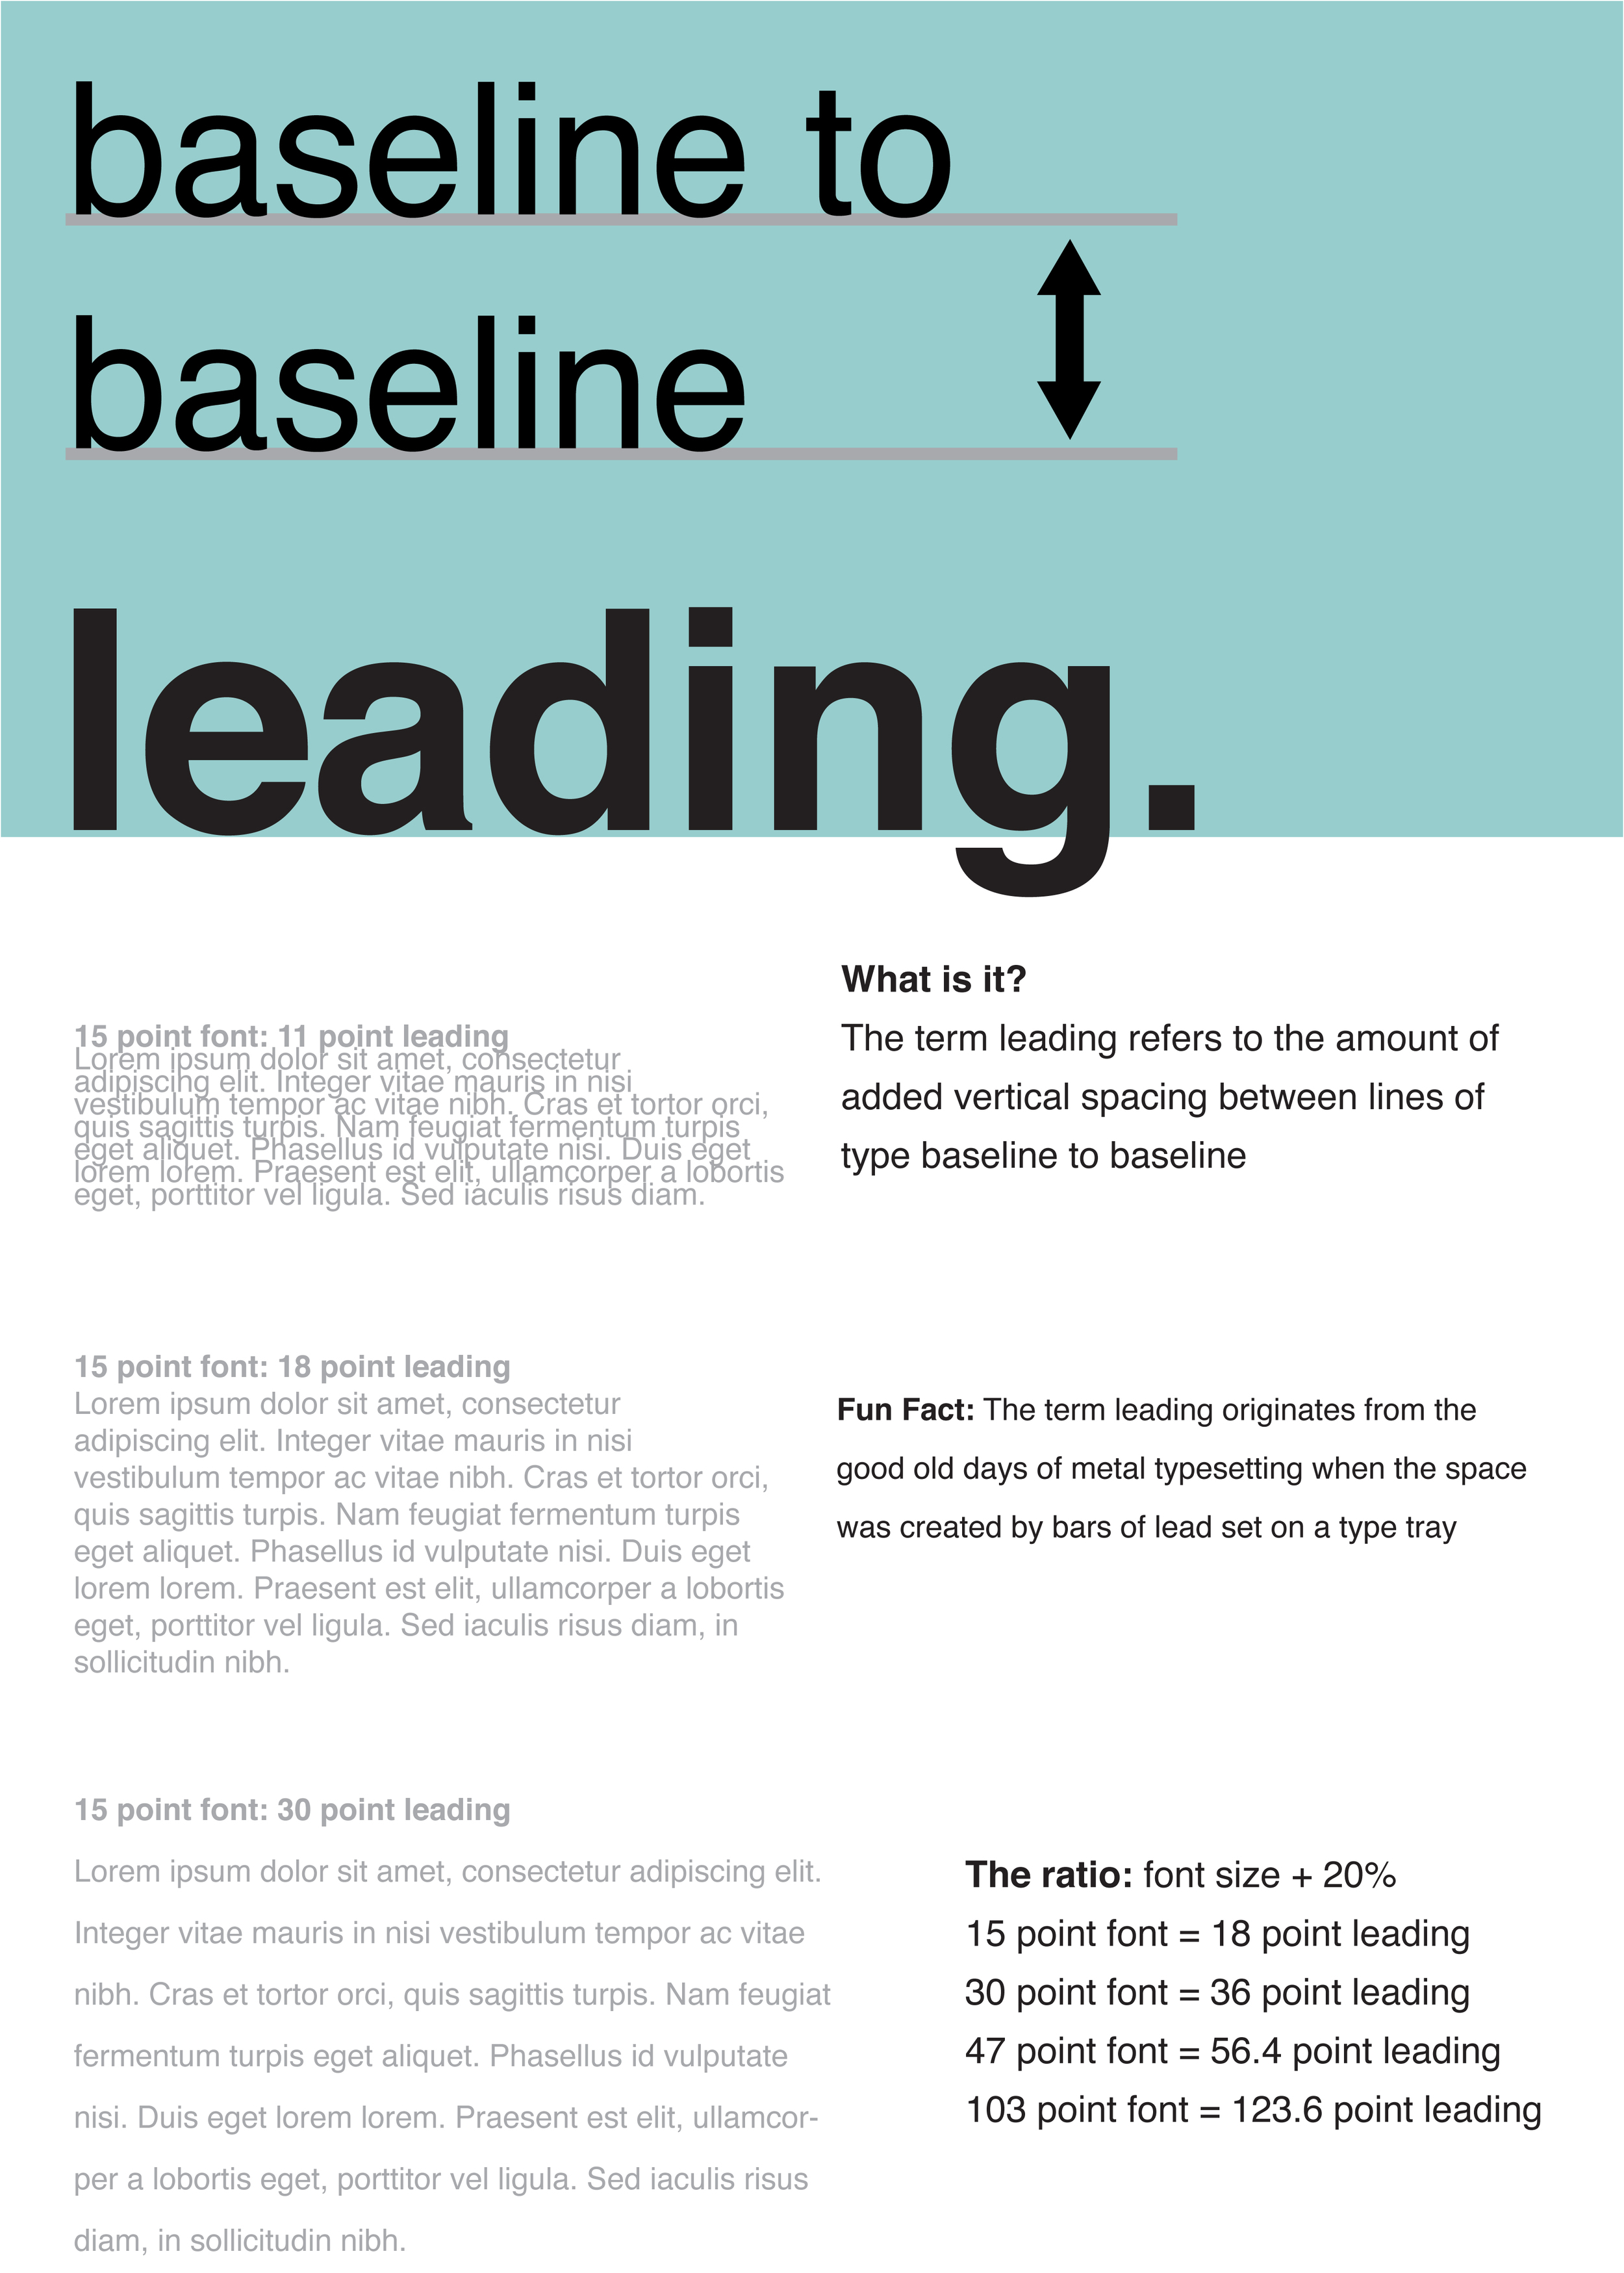 Leading poster created as part of a series of common type mistakes in 2010. Poster was used as a teaching element in to bring common typographical mistakes to light.